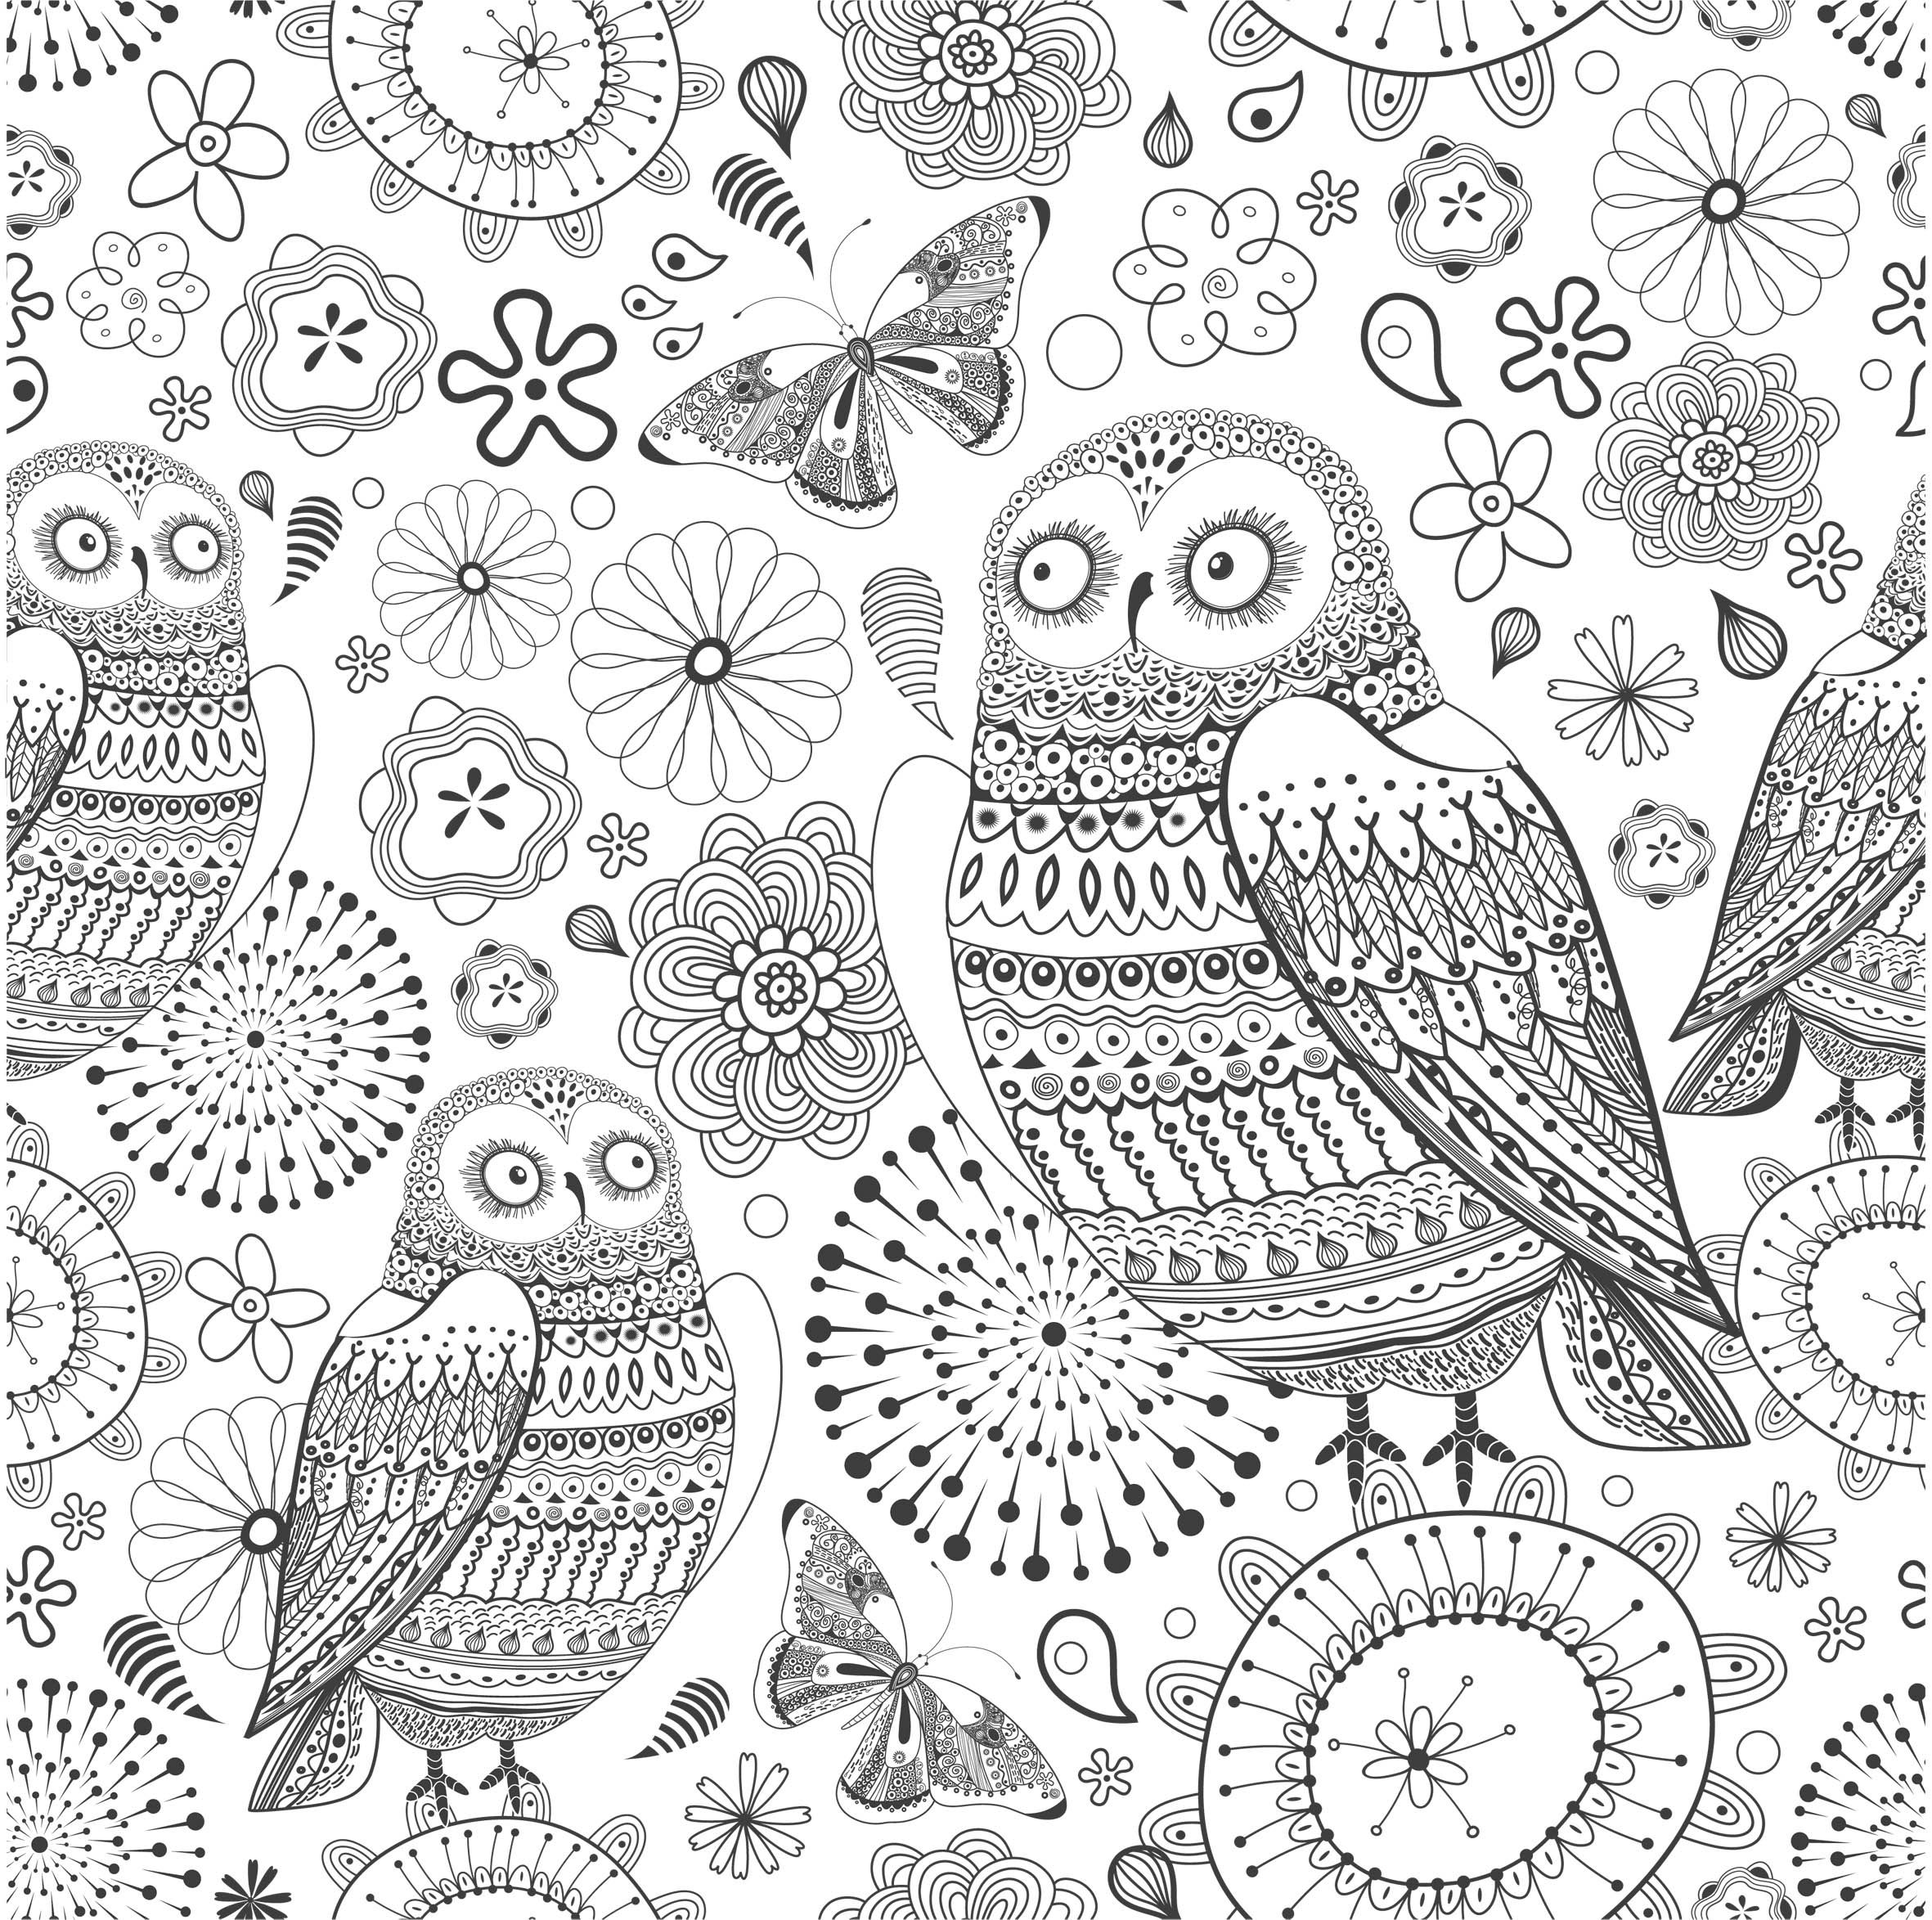 Anti stress colouring pages for adults - Coloriage Inspiration Amazonie Des Coloriages Anti Stress En Printable Gratuit Coloring For Adultsadult